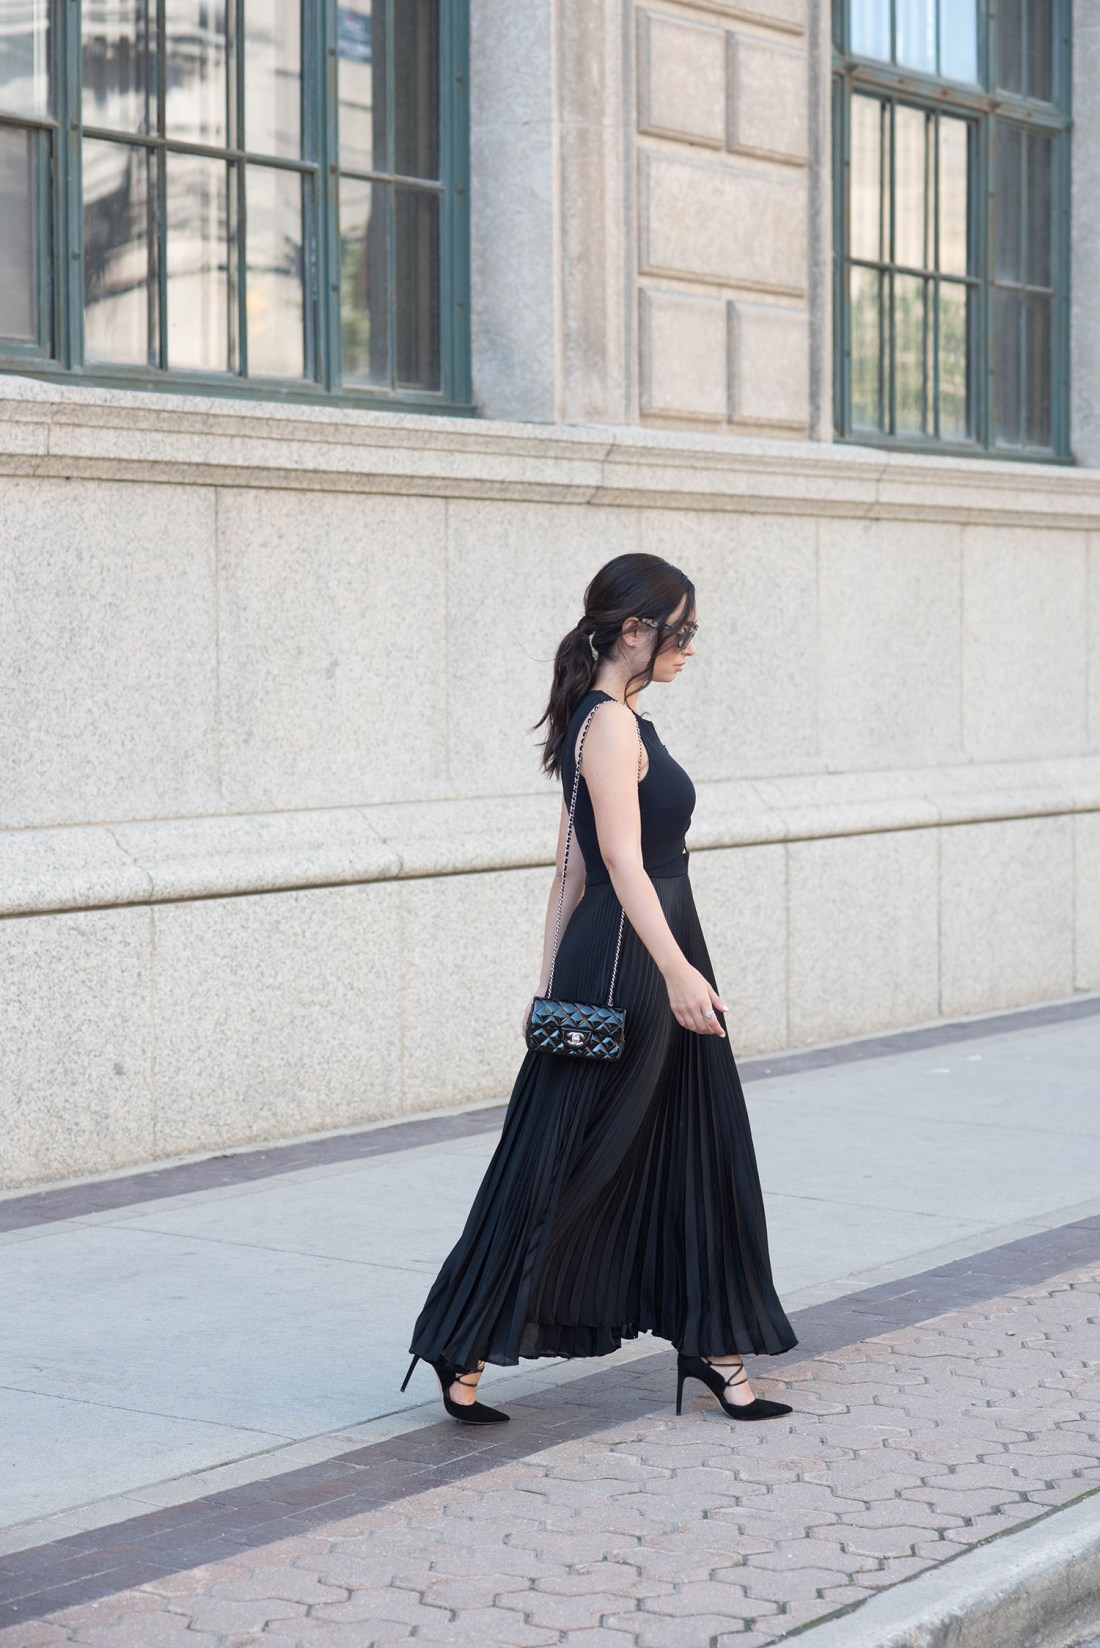 Winnipeg fashion blogger Cee Fardoe of Coco & Vera walks in the Exchange District wearing a black ALC gown and carrying a Chanel extra mini handbag